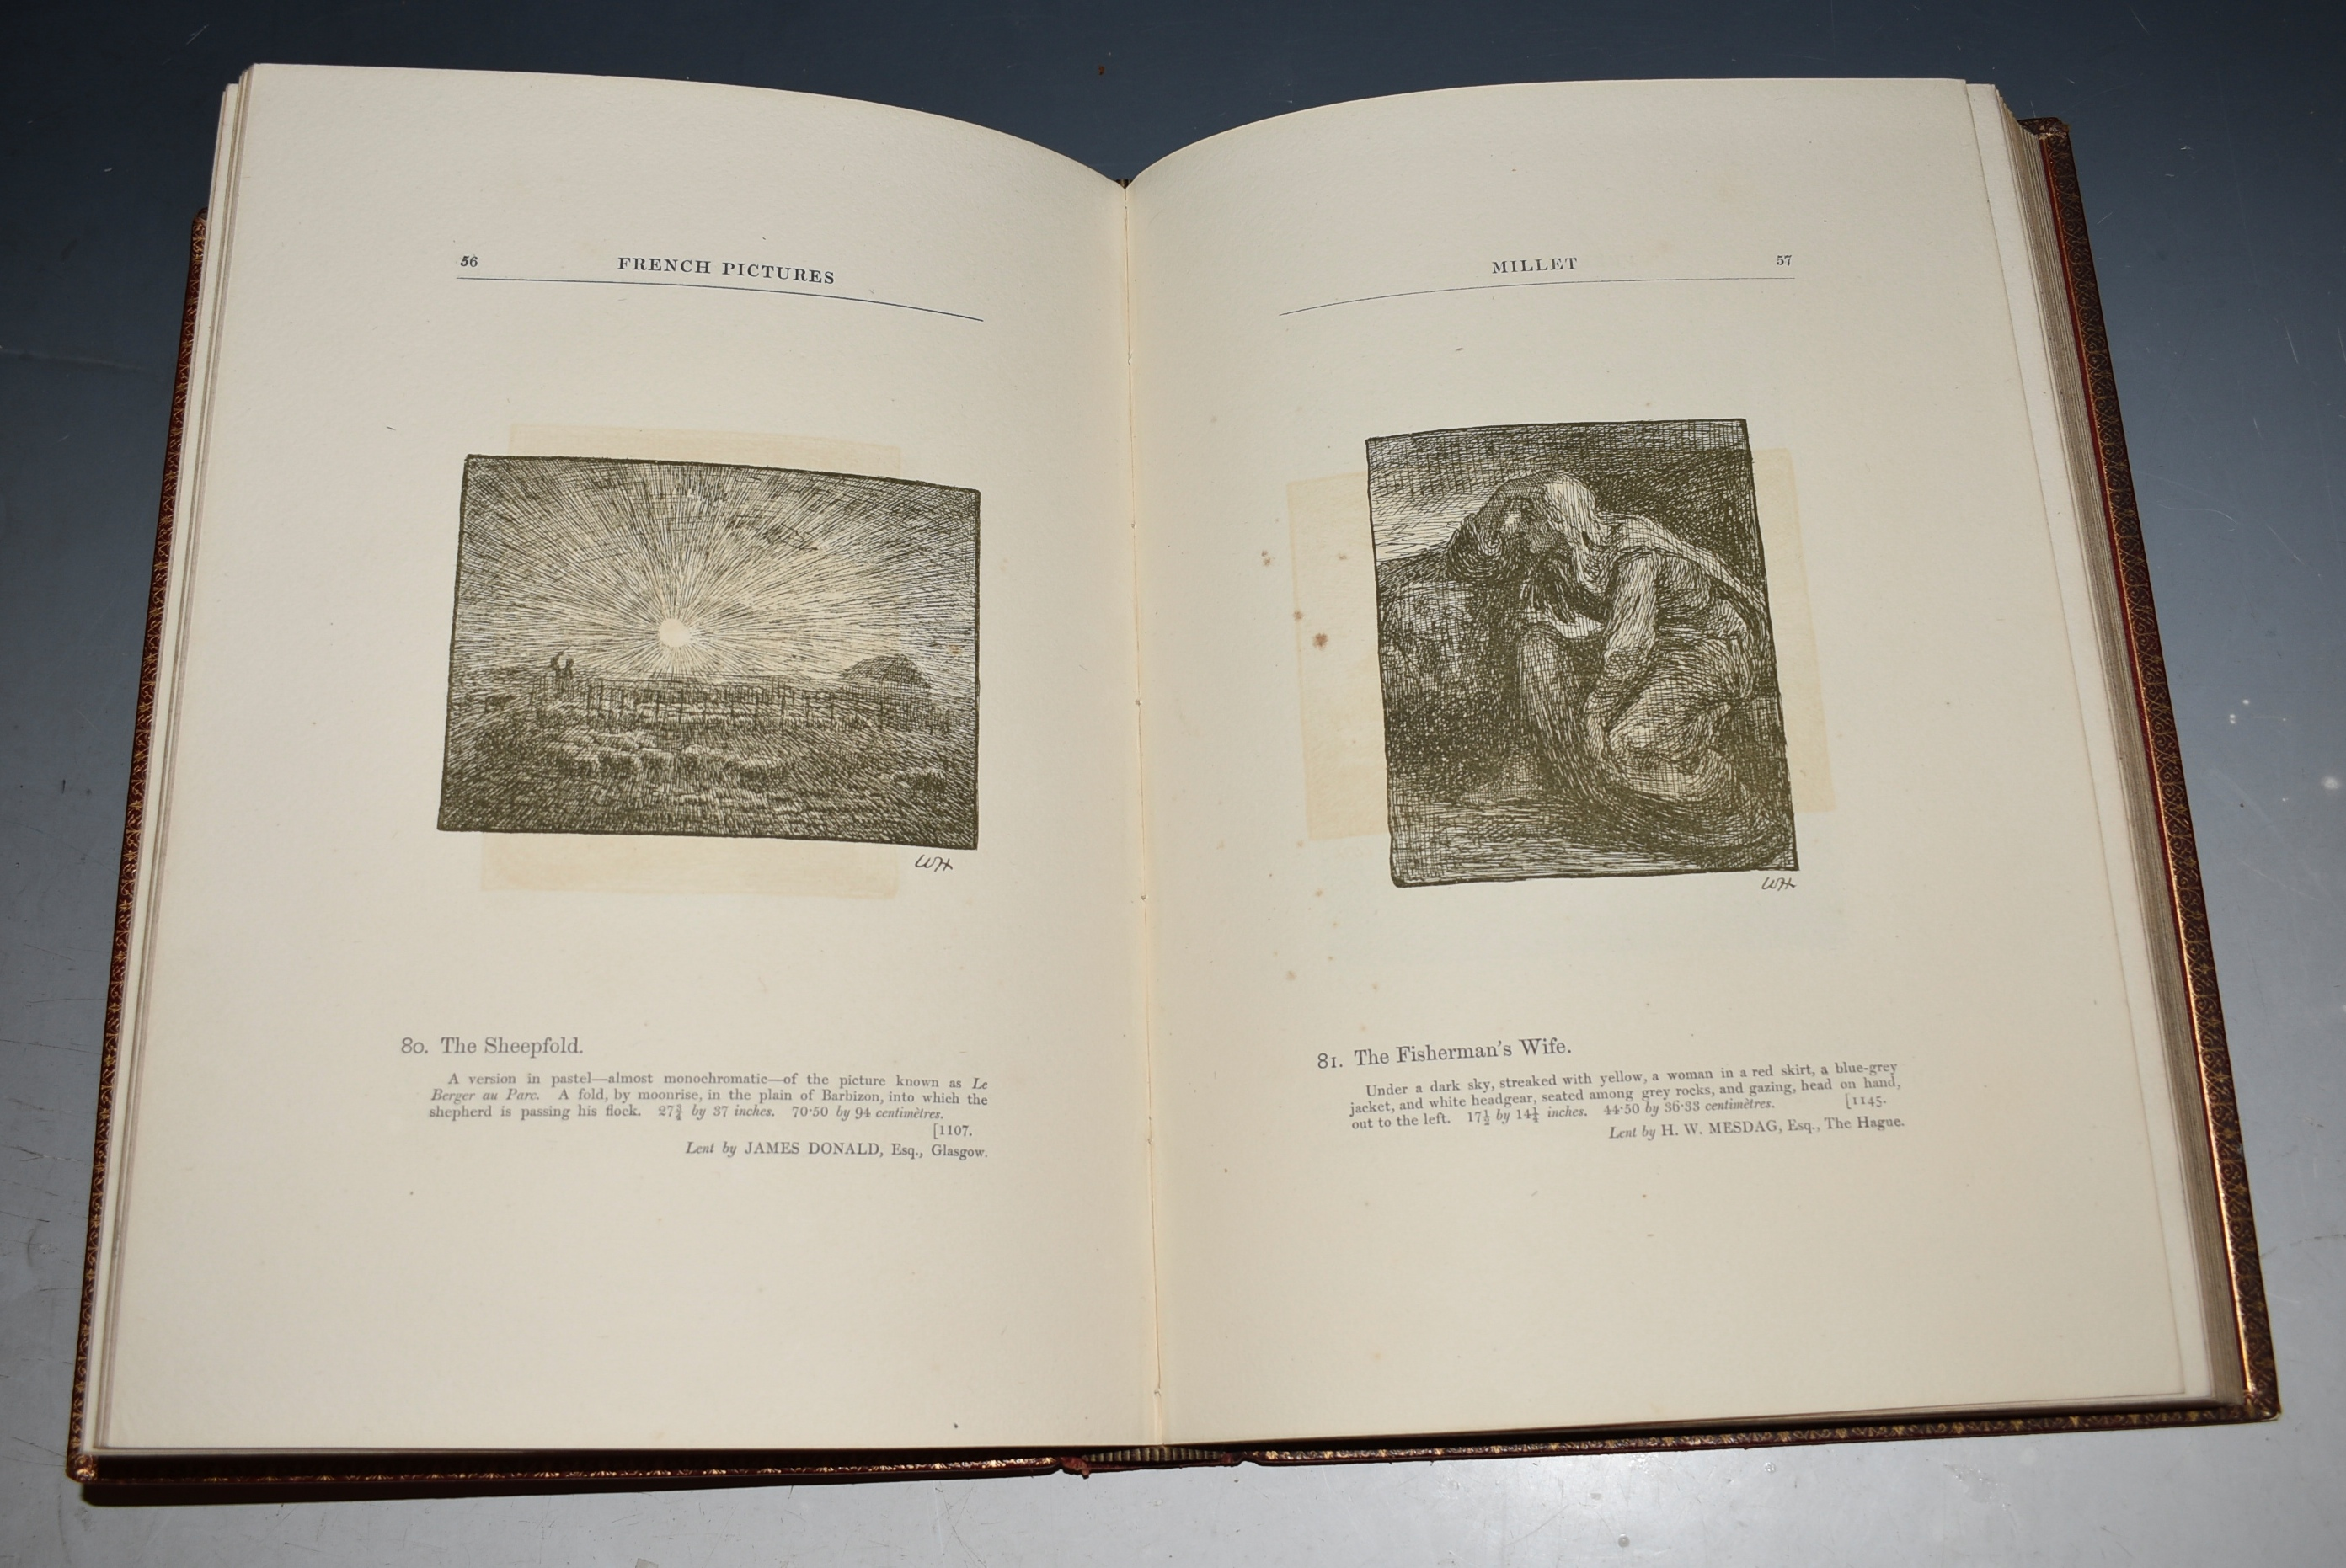 Image for Memorial Catalogue of The French and Dutch Loan Collection, Edinburgh International Exhibition 1886. Note and Descriptions by William Ernest Henley. The Etchings and Sketches by William Hole, and Philip Zilcken, and Bernardus Joh. Blommers. LIMITED NUMBERED EDITION.